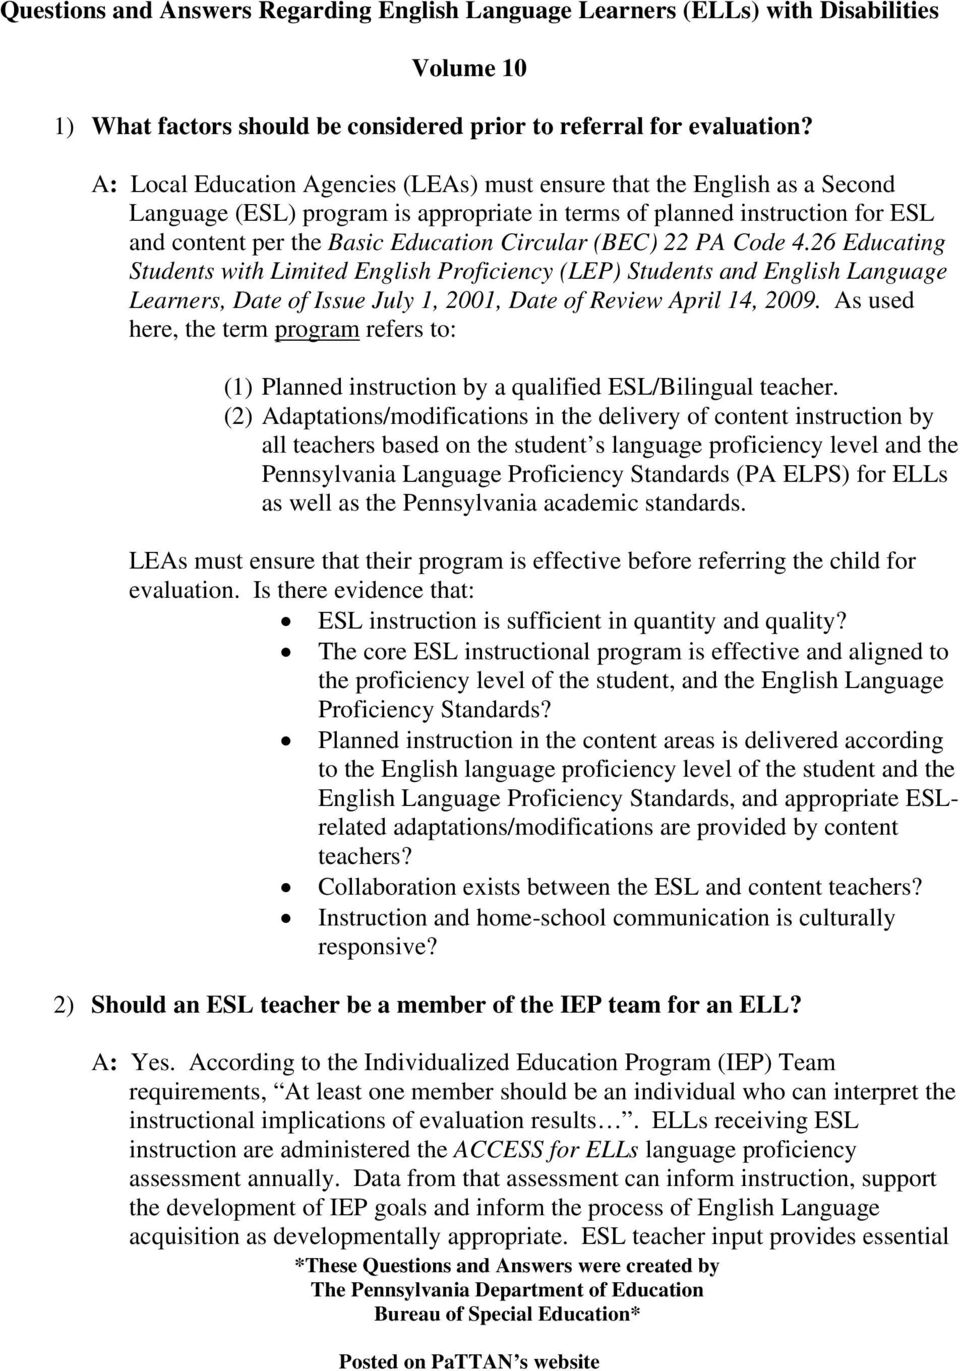 (BEC) 22 PA Code 4.26 Educating Students with Limited English Proficiency (LEP) Students and English Language Learners, Date of Issue July 1, 2001, Date of Review April 14, 2009.